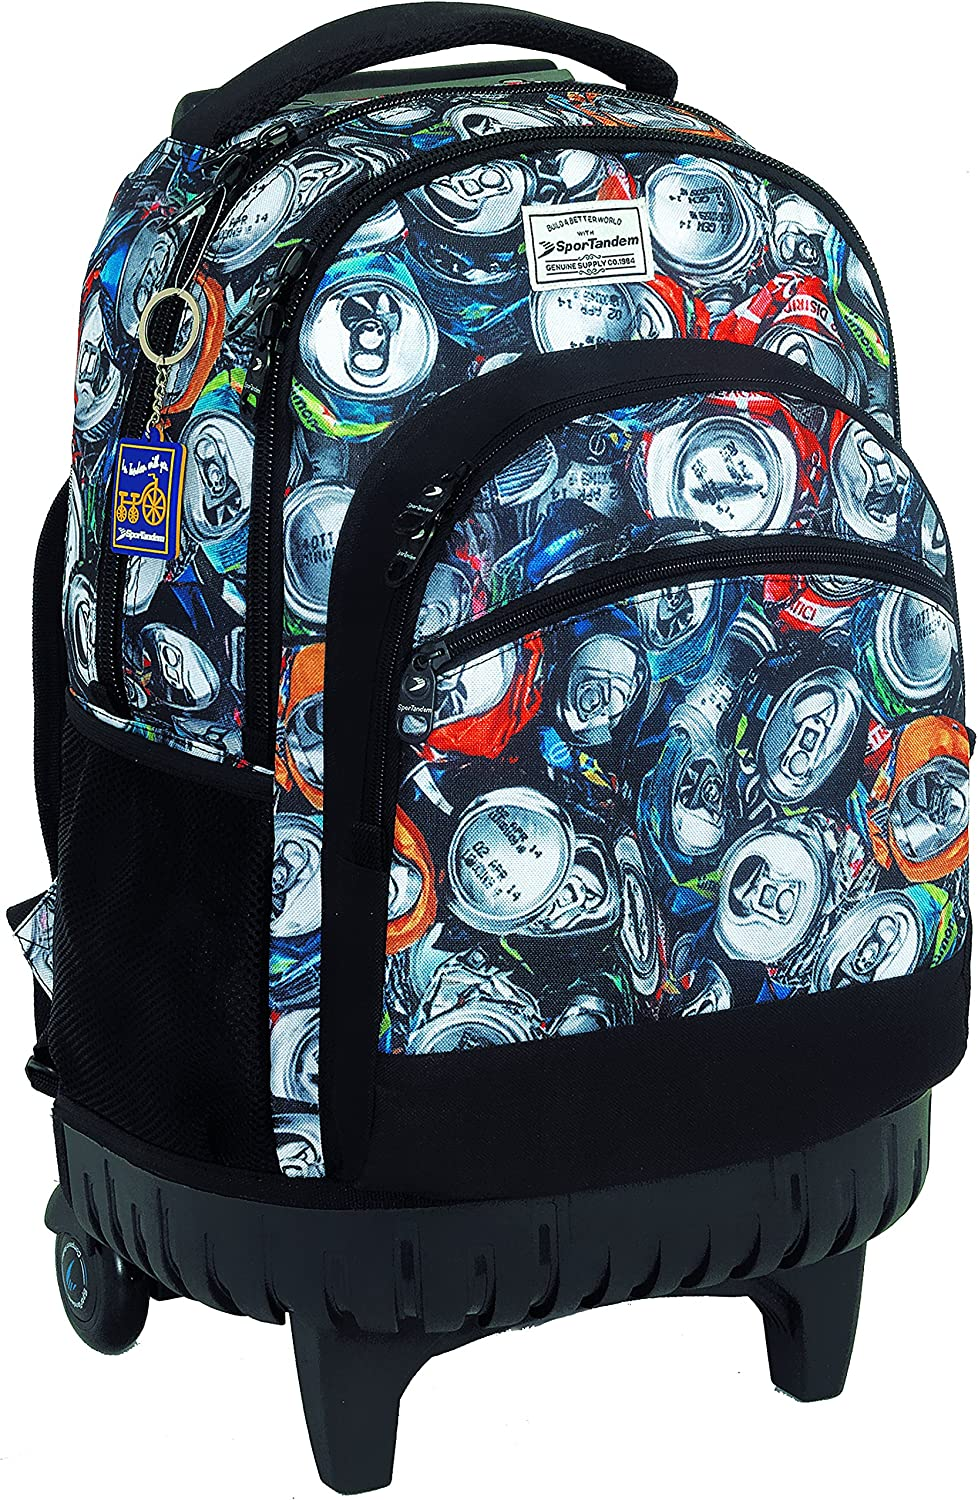 Backpack with fixed car recycling